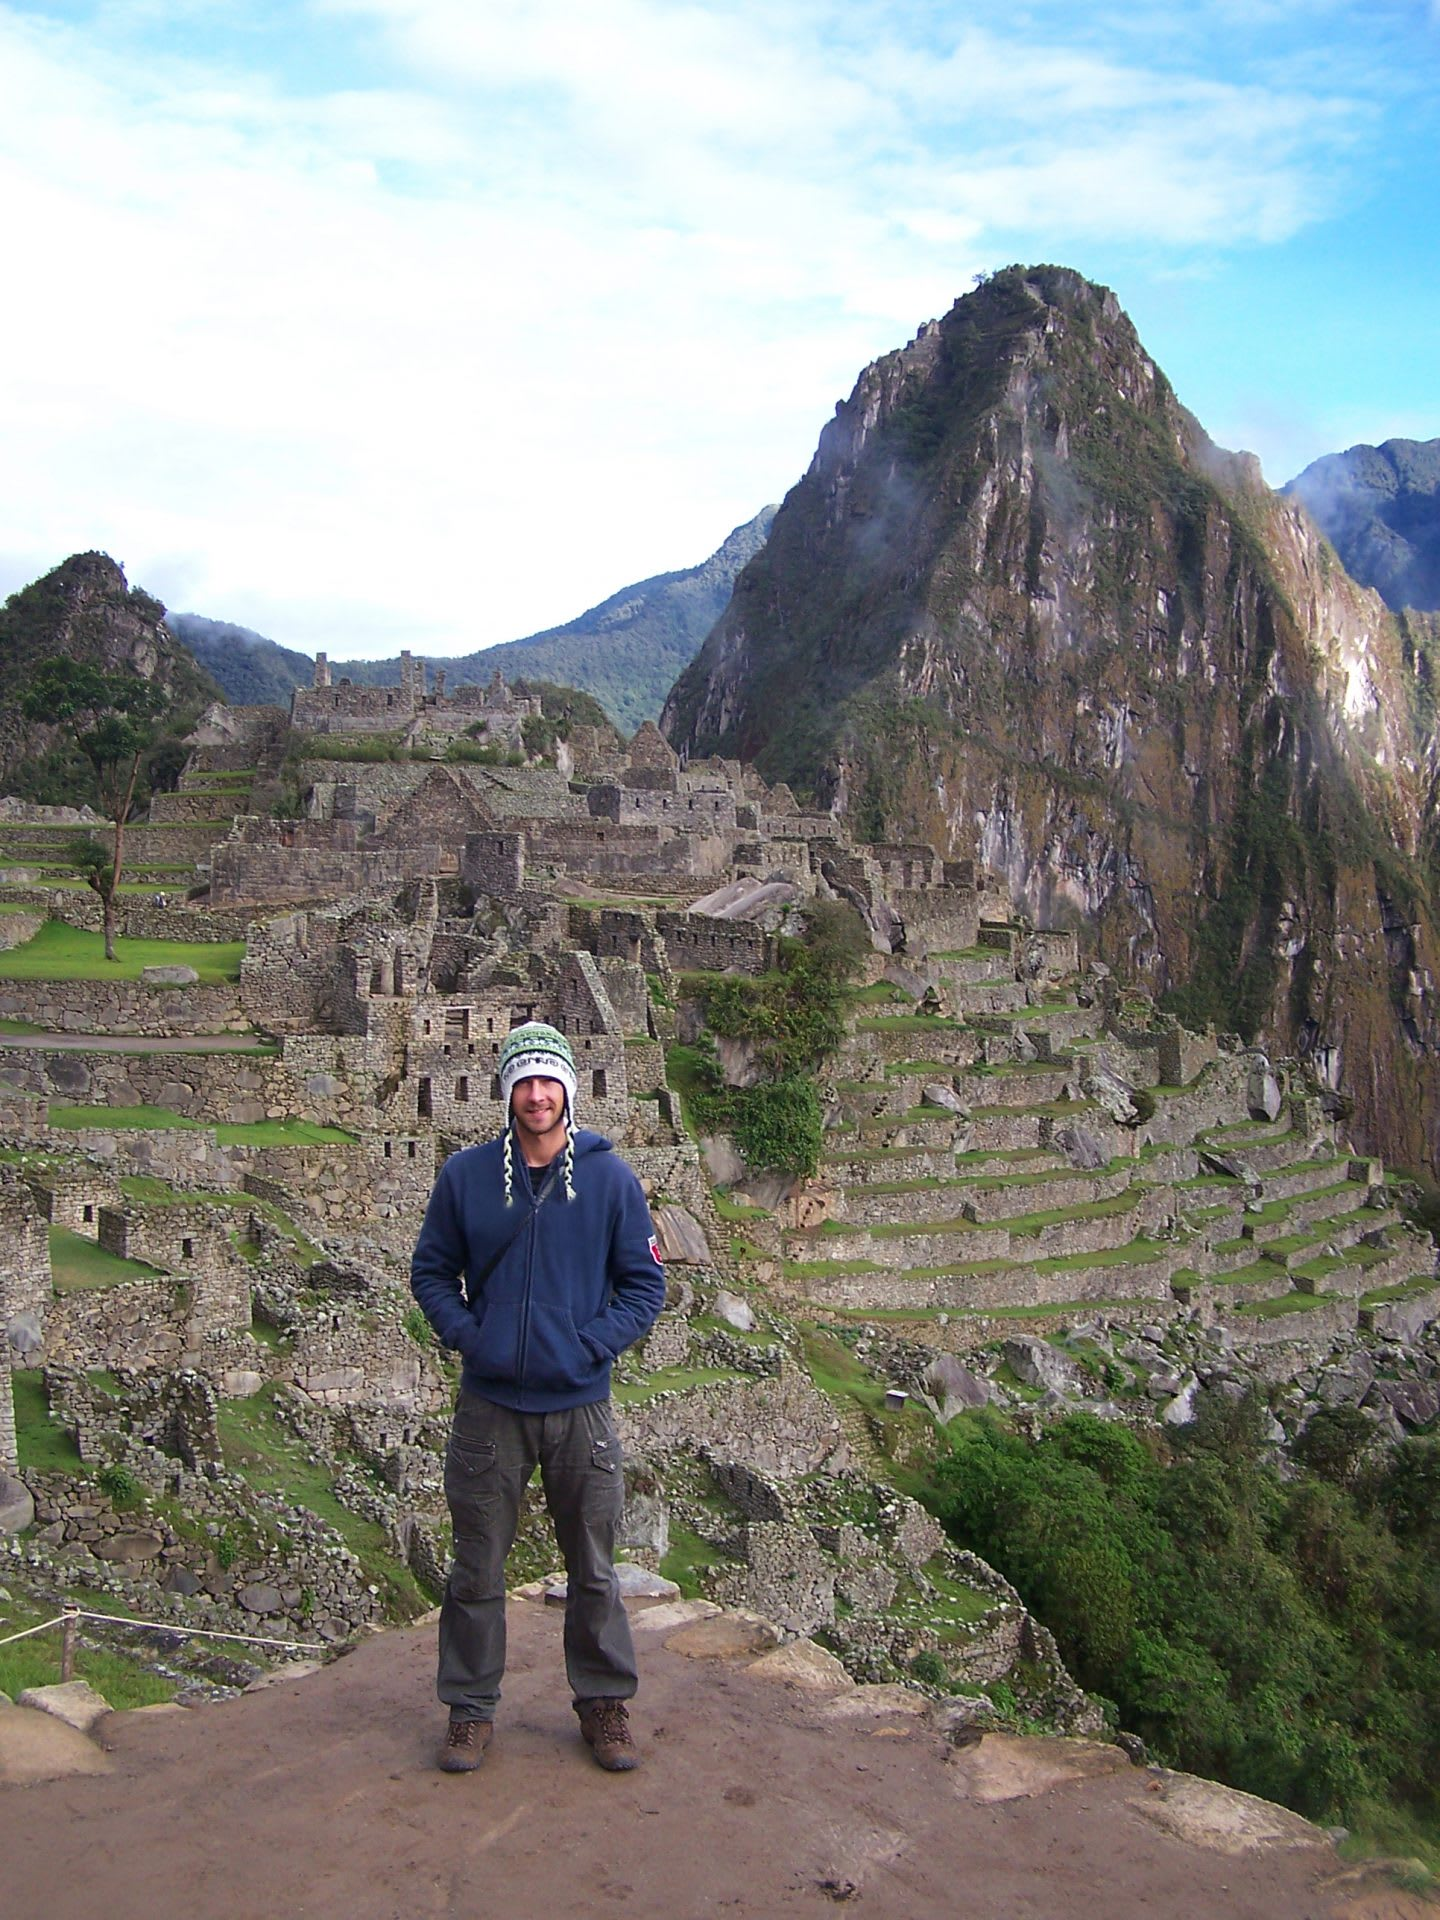 Tourist standing in front of Machu Picchu